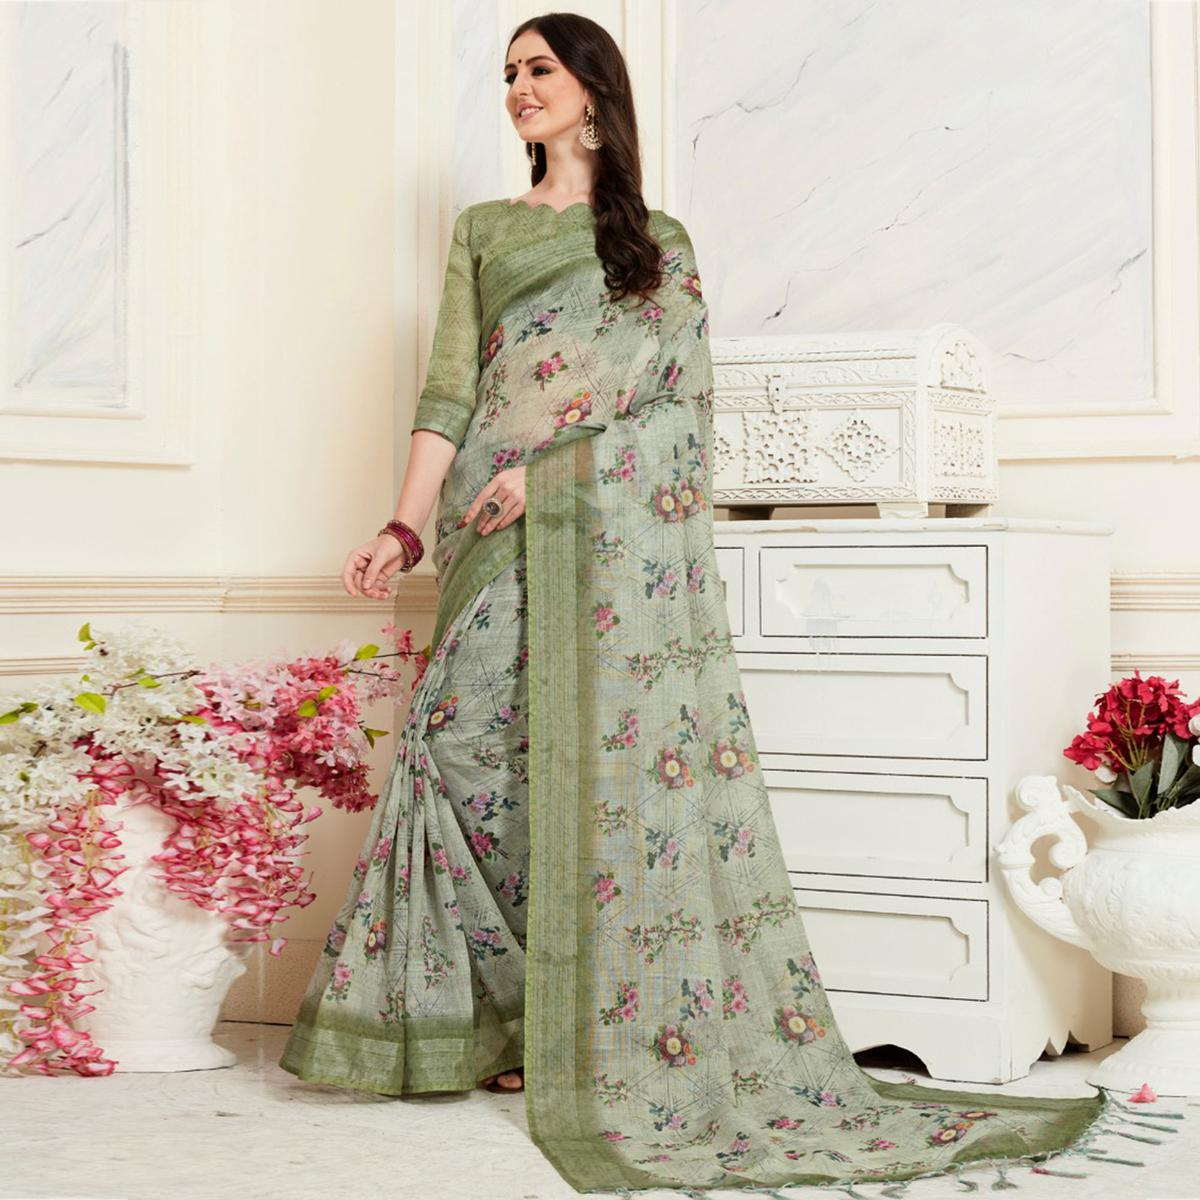 Flaunt Olive Green Colored Casual Floral Digital Printed Linen Saree